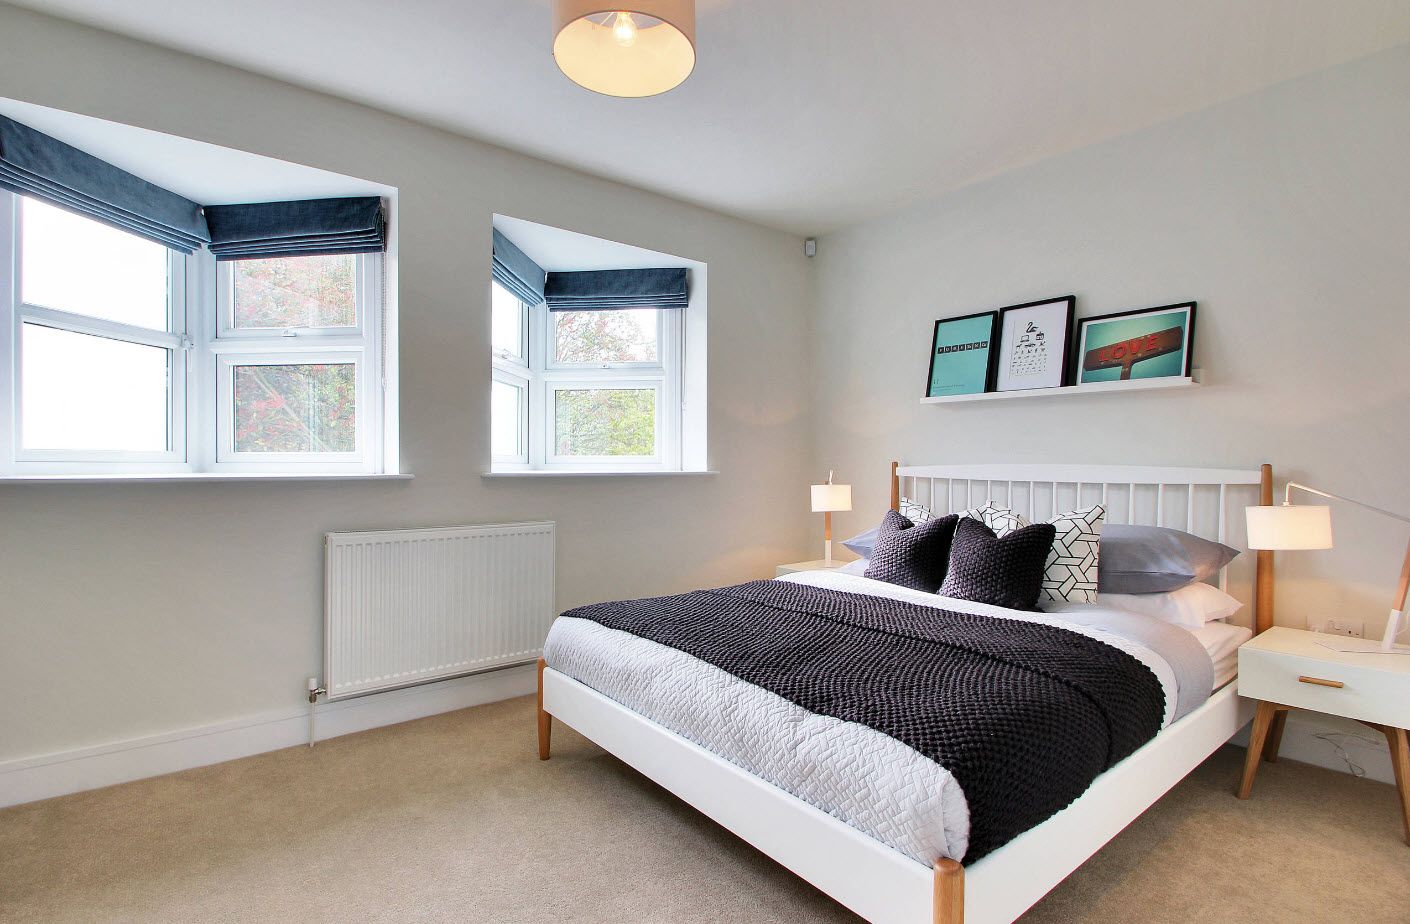 Nice bay window design for unusual architecture of the cottage's bedroom